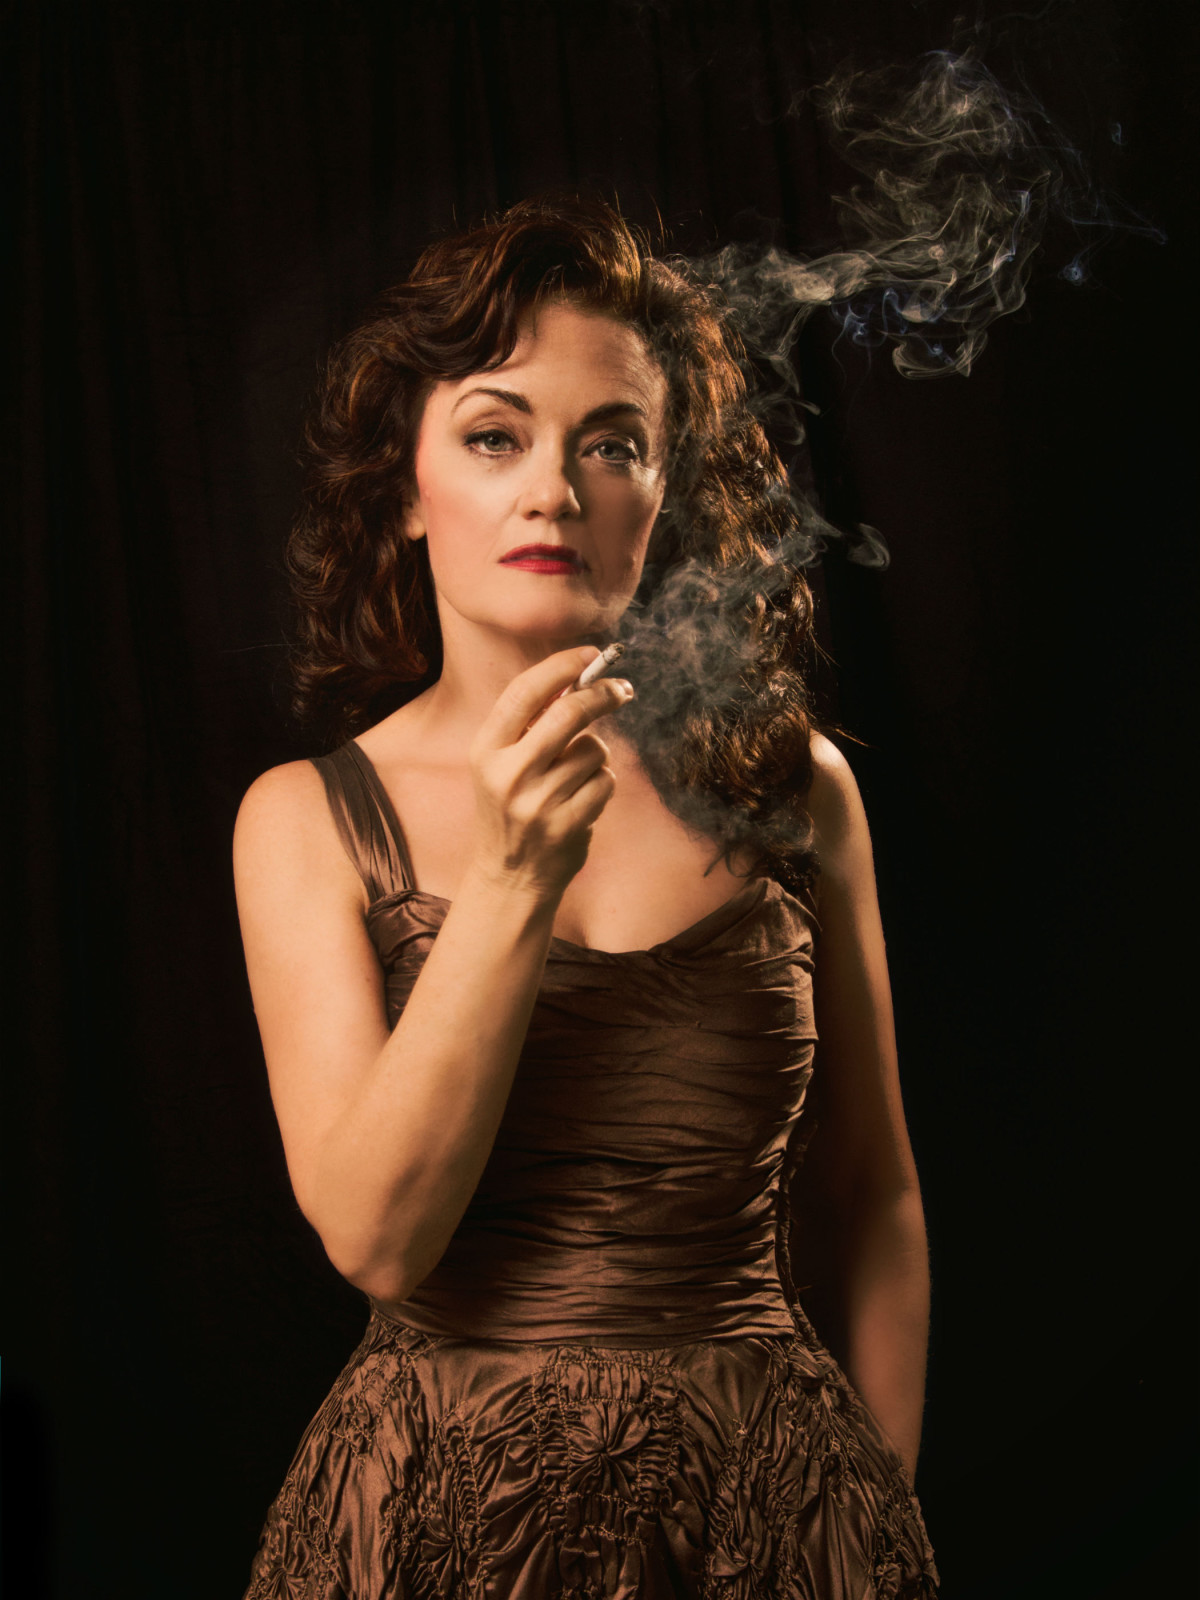 ab904225c9 Versatile Dallas actress brings glam screen icon back to the stage ...